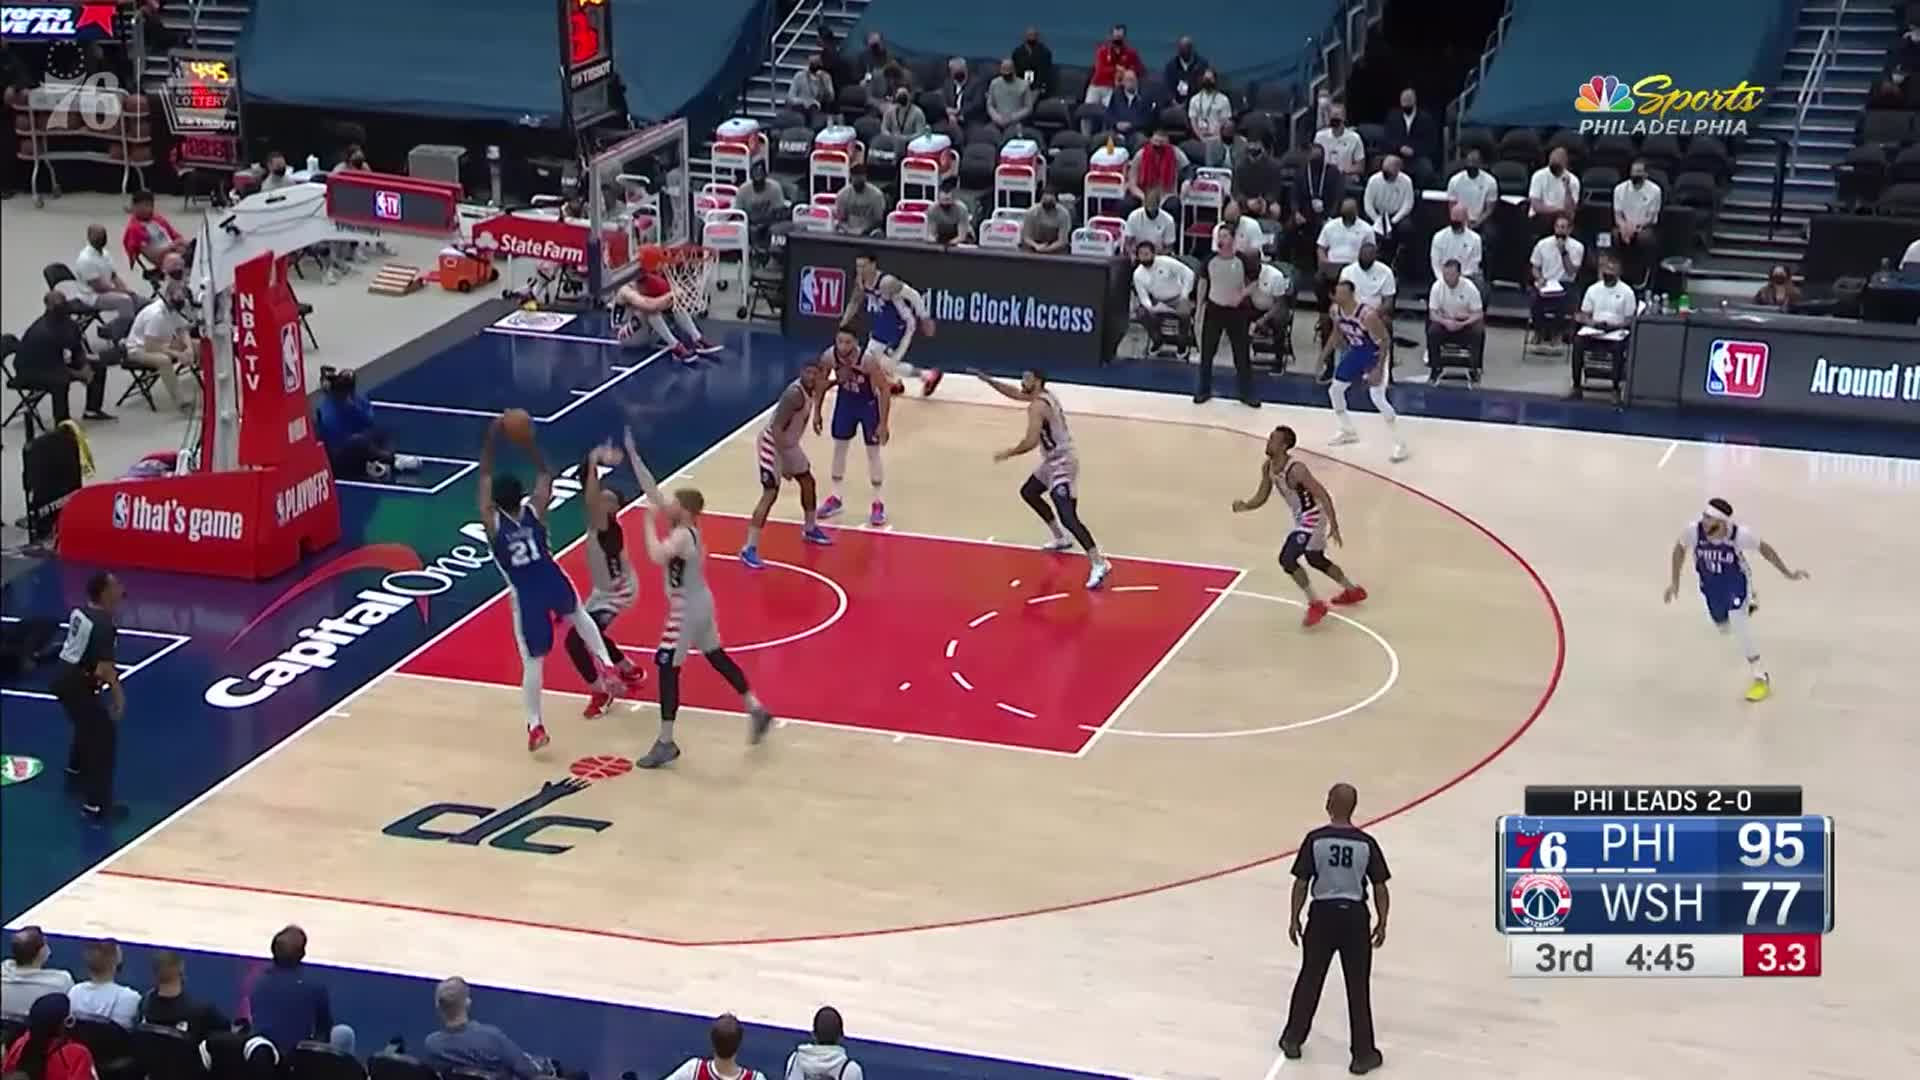 Highlights | 76ers @ Wizards (05.29.21)